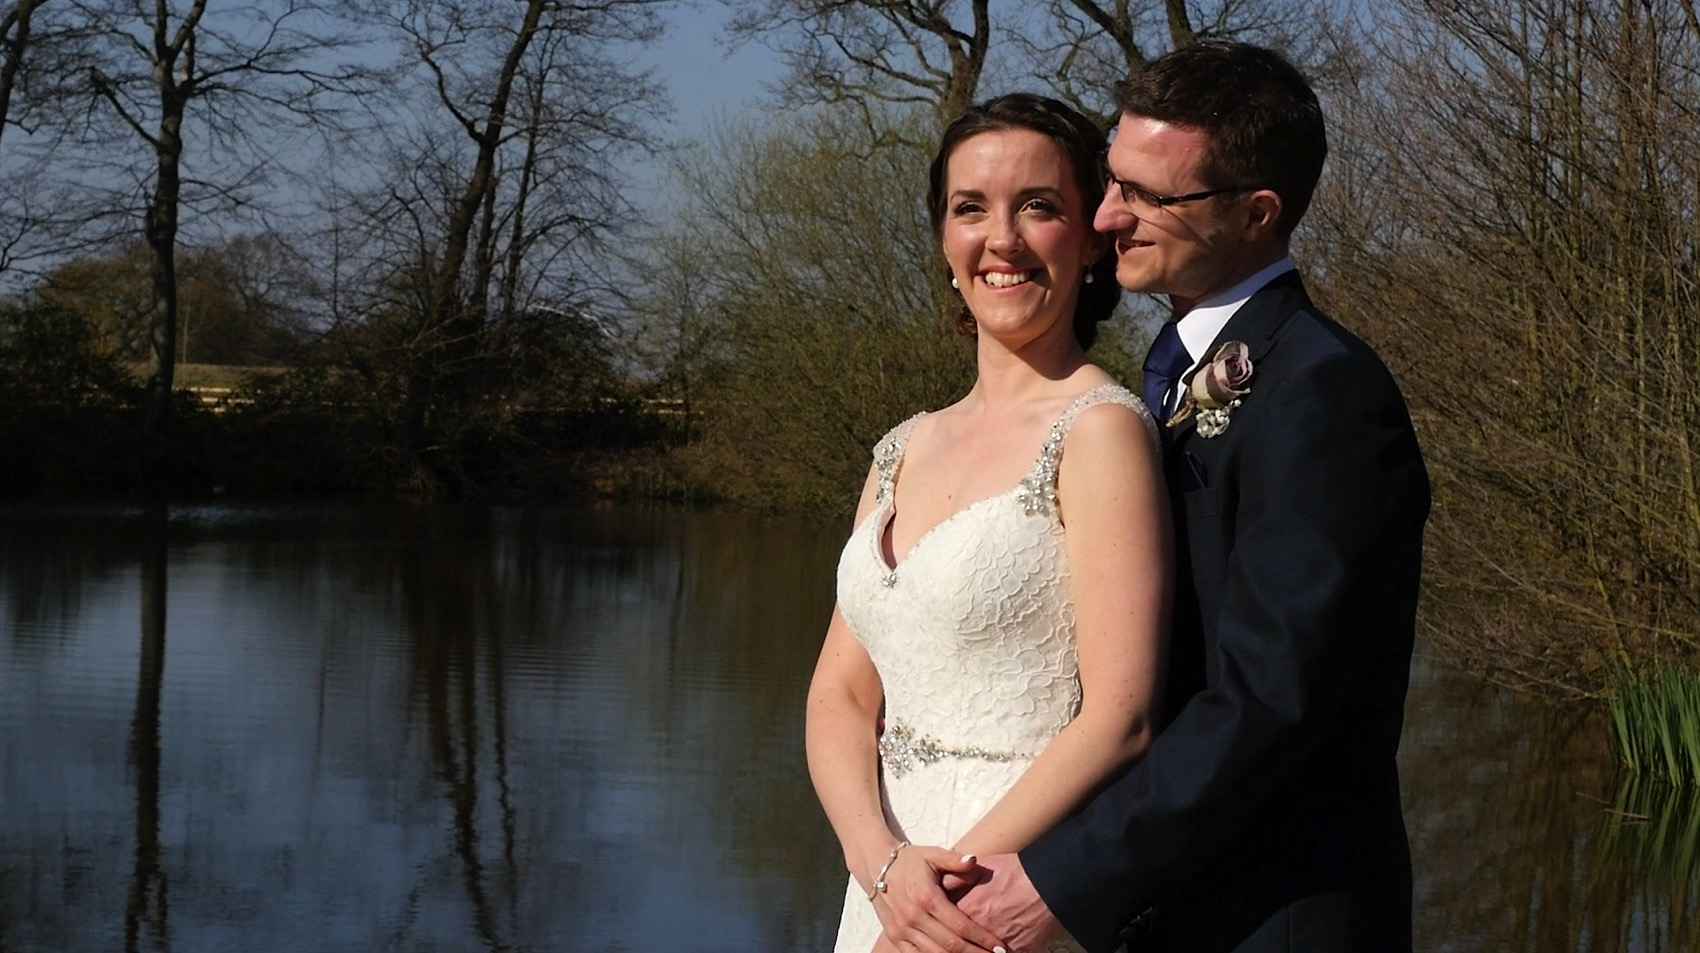 Tom and Laura pictured beside the lake during their North West Wedding Video at Styal Lodge.